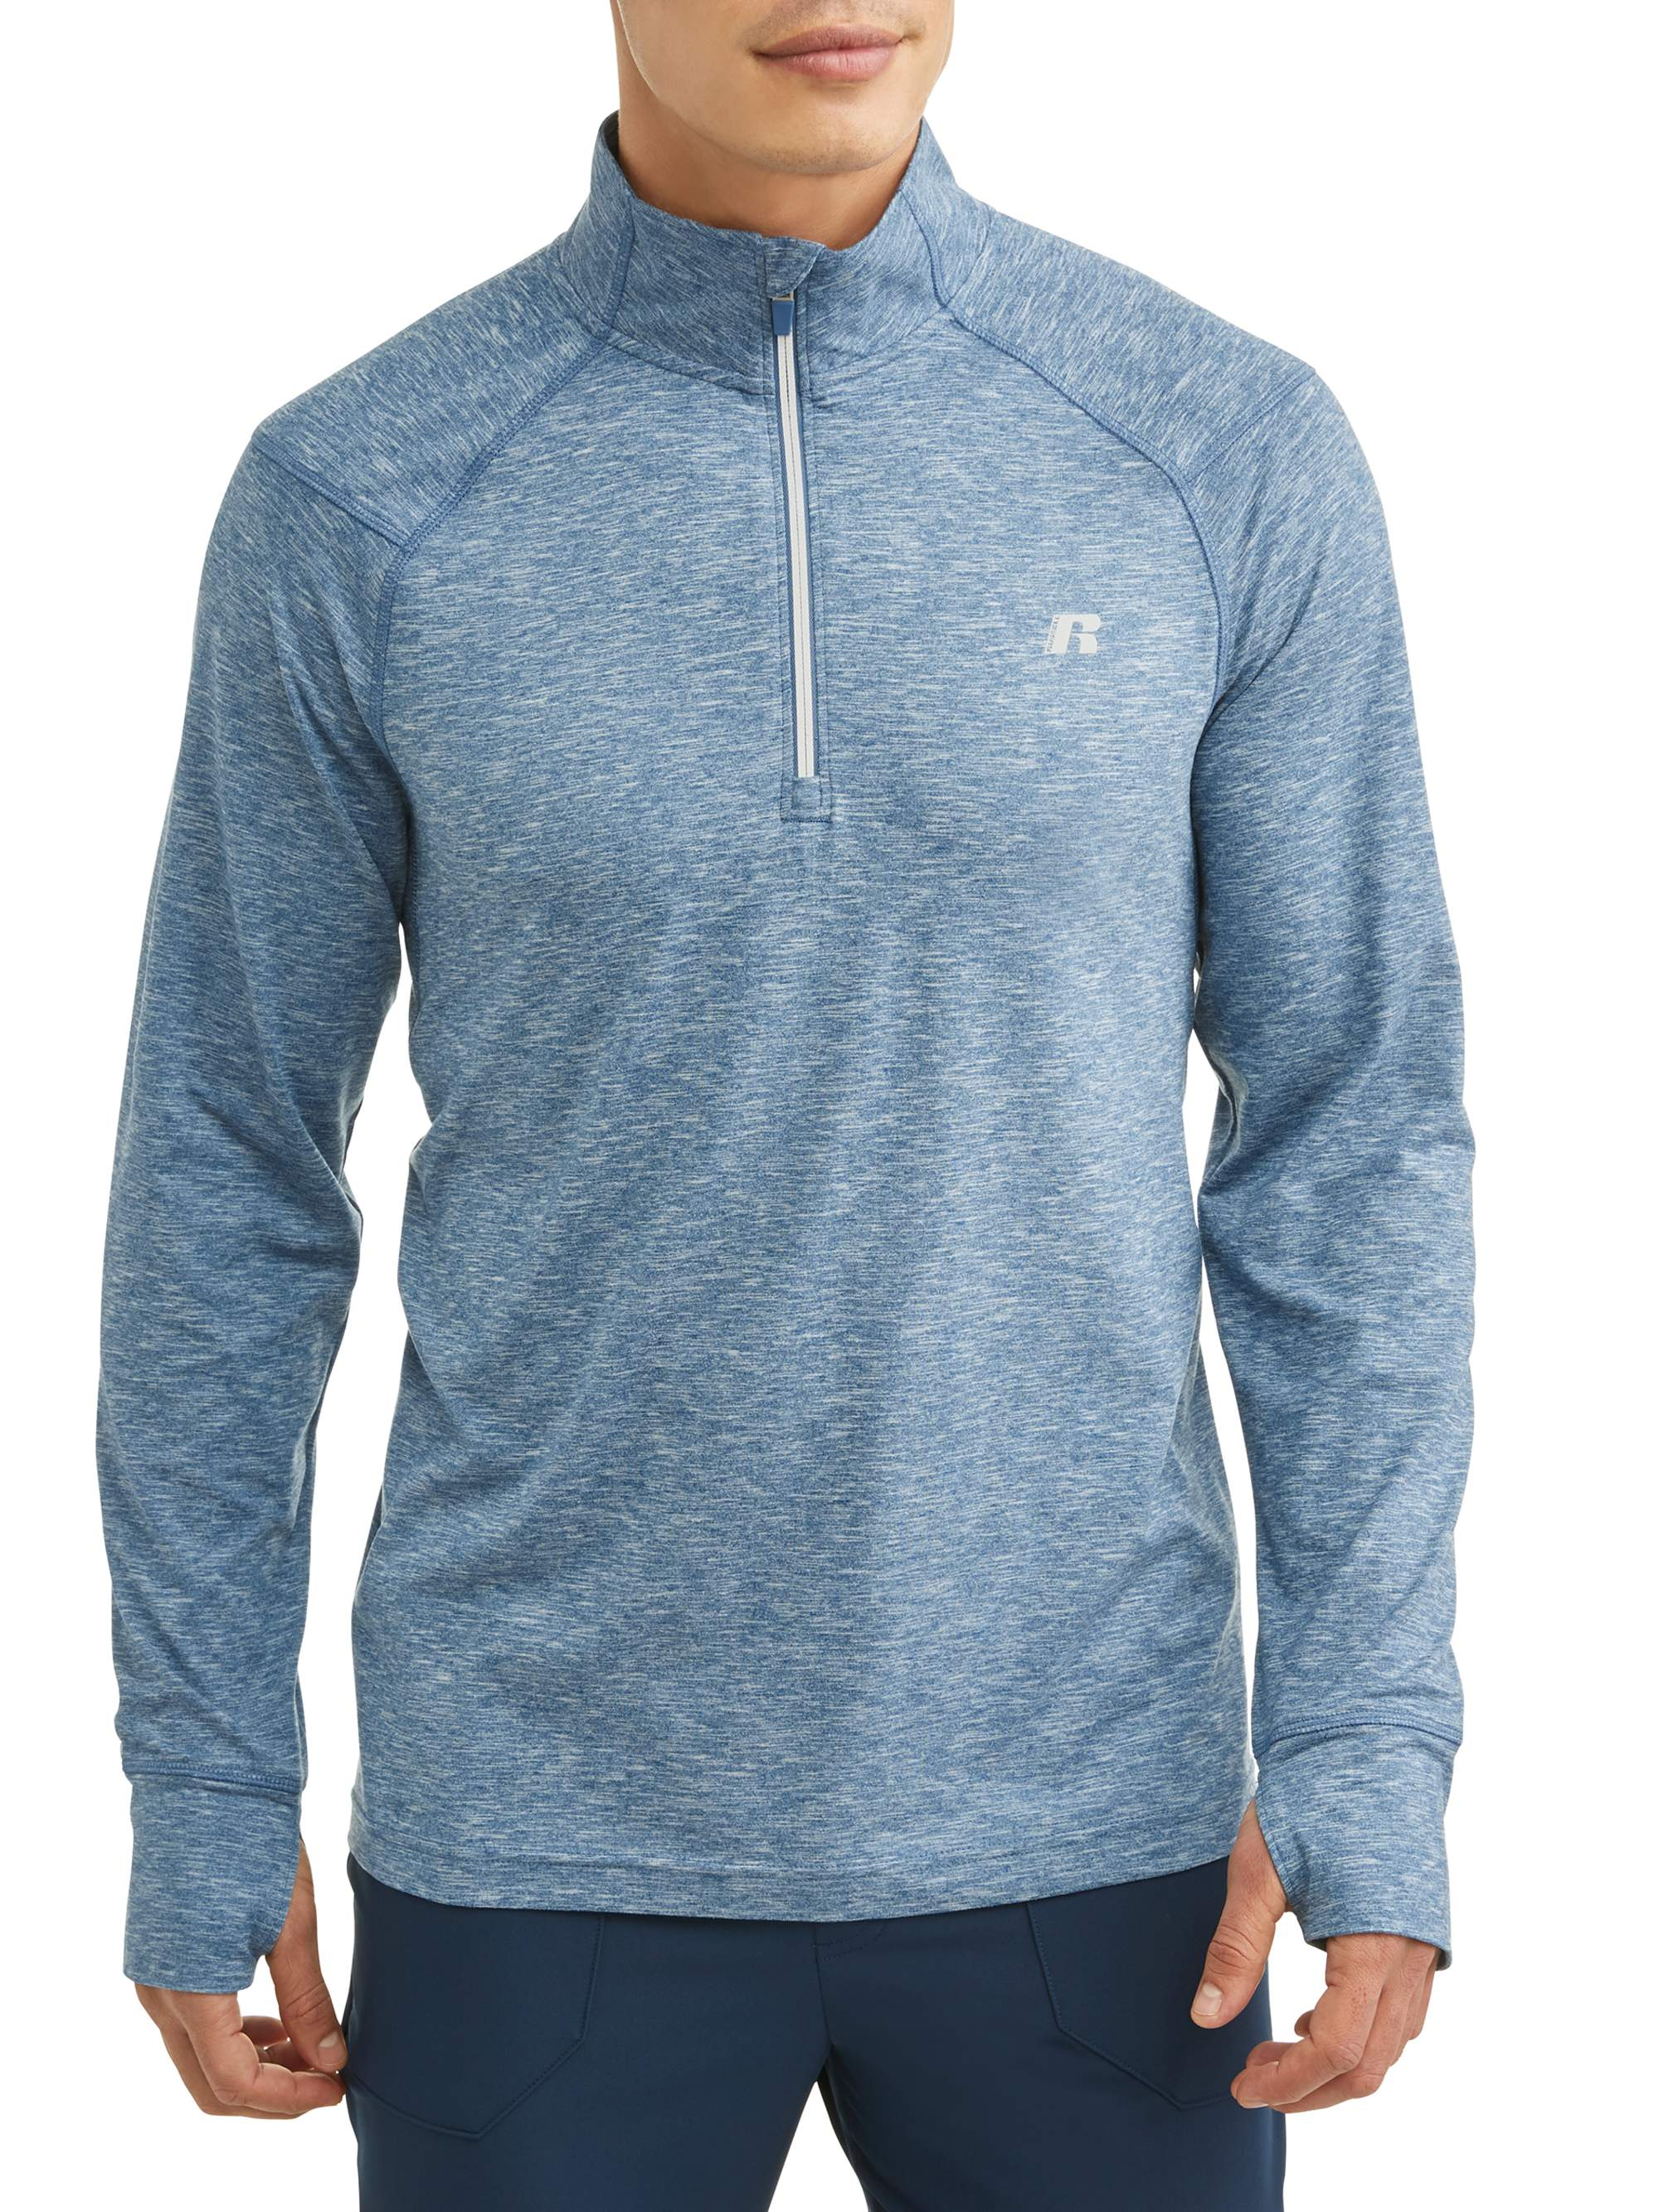 Russell Exclusive Men's Core Quarter Zip Pullover